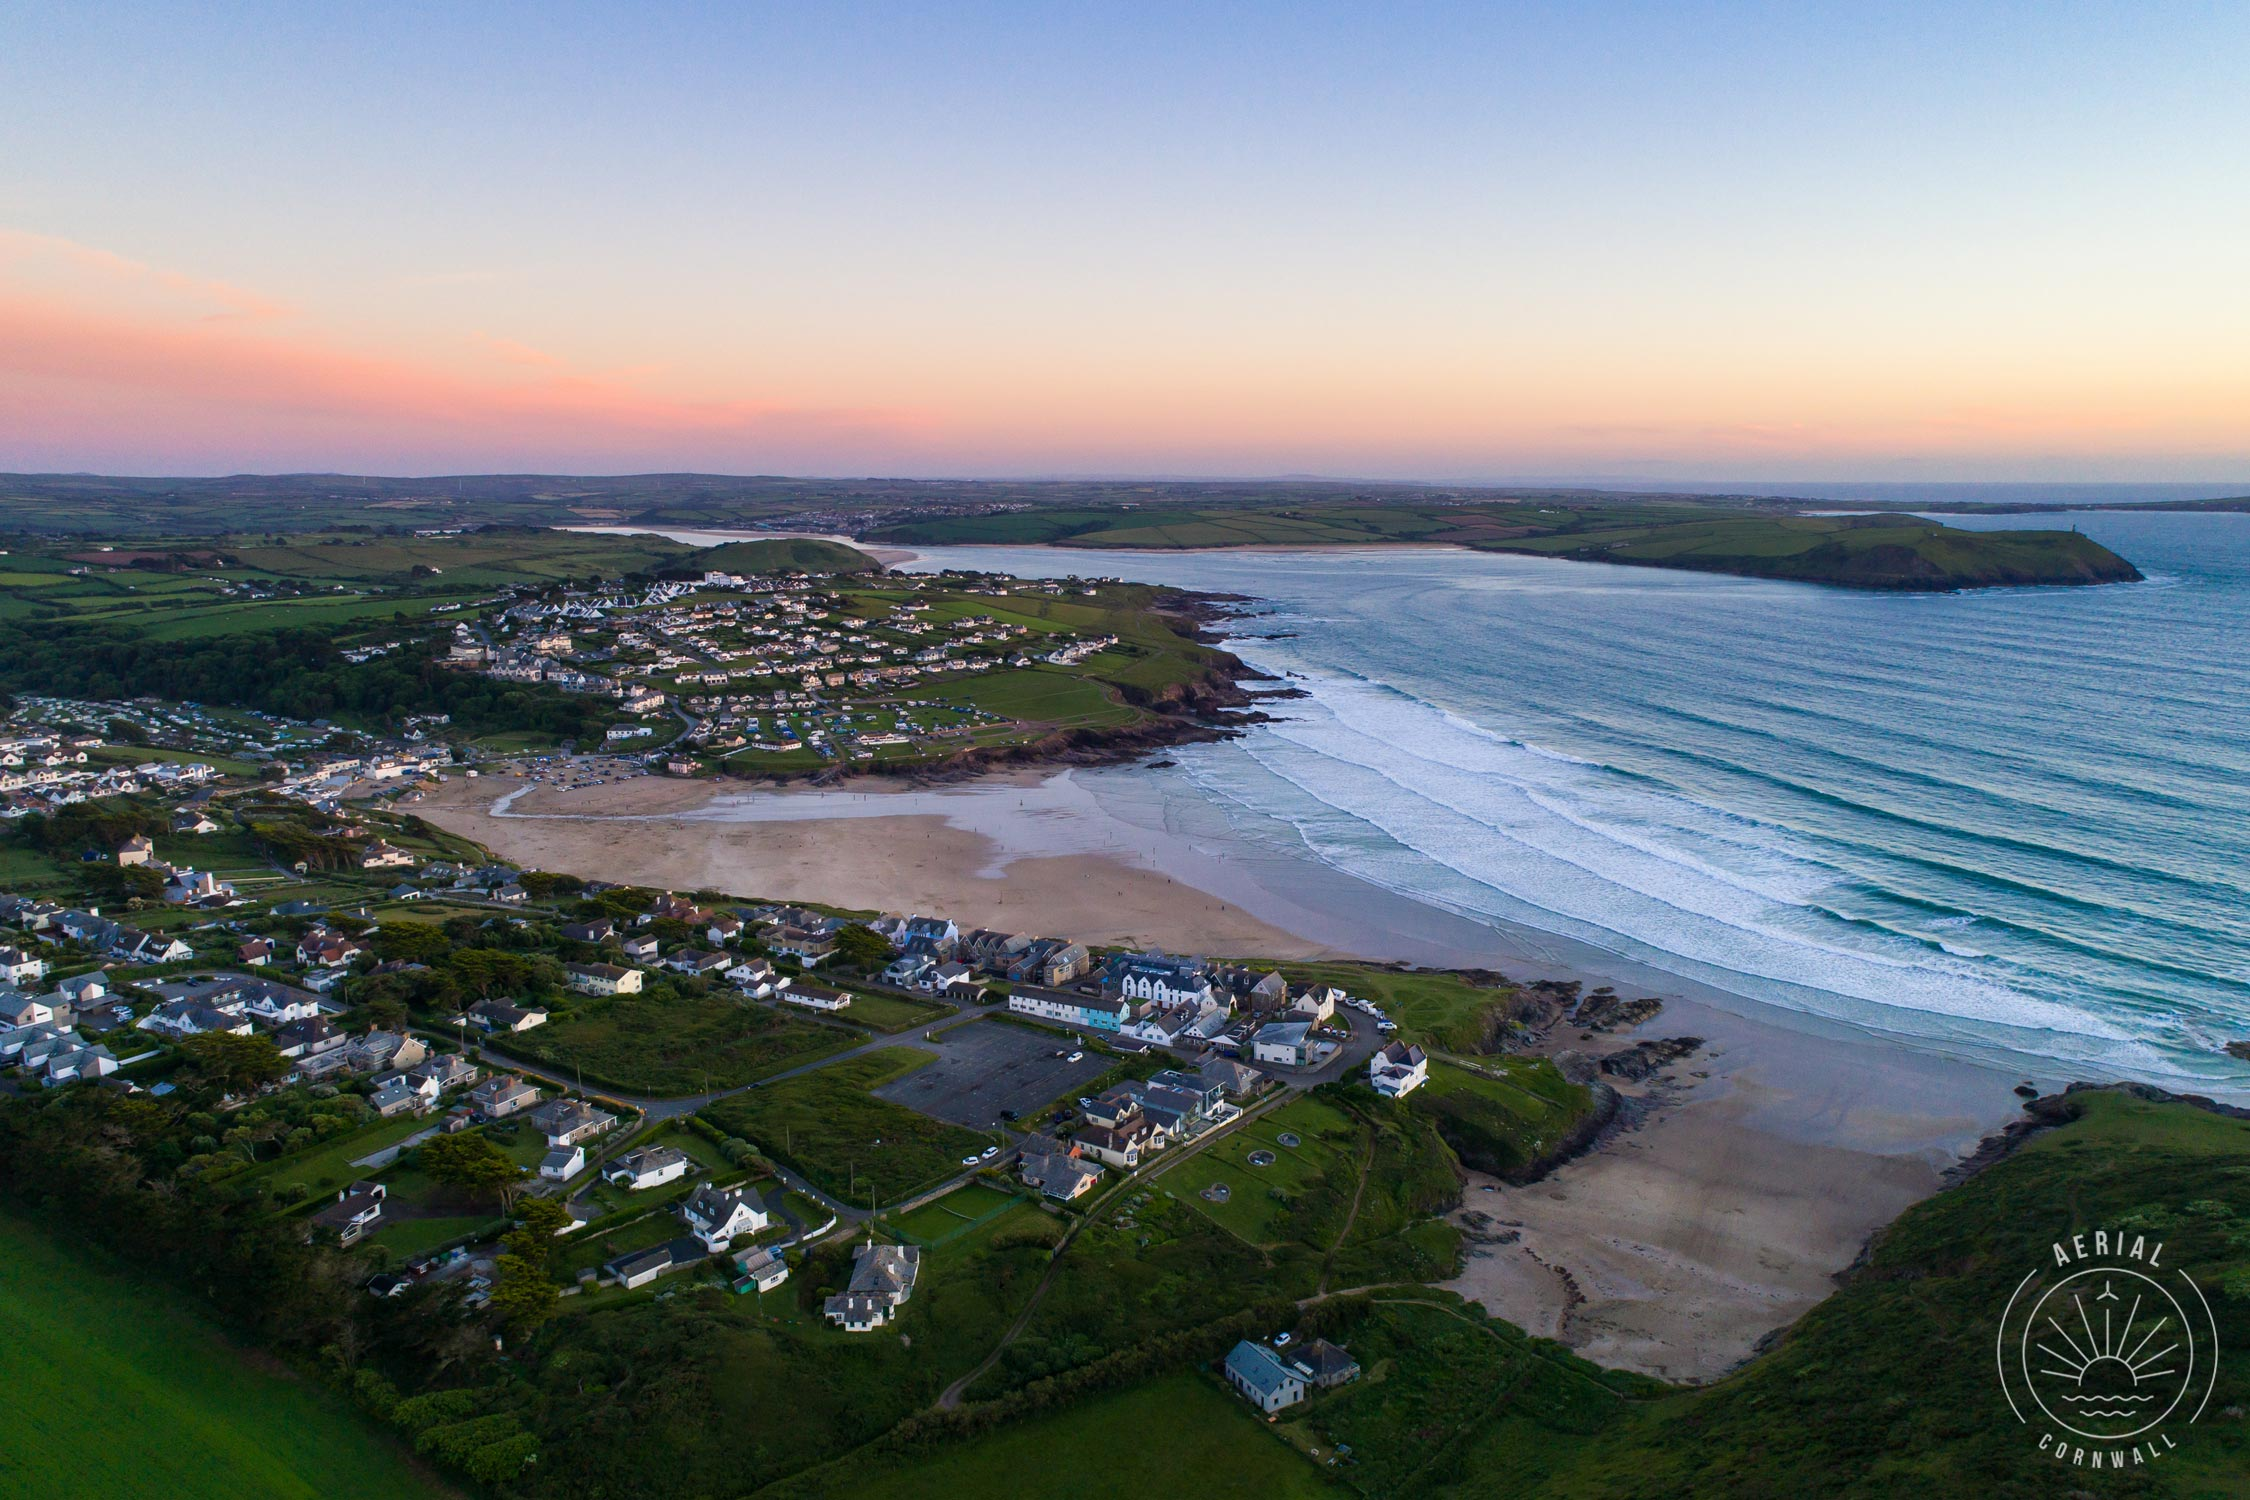 Location: Polzeath